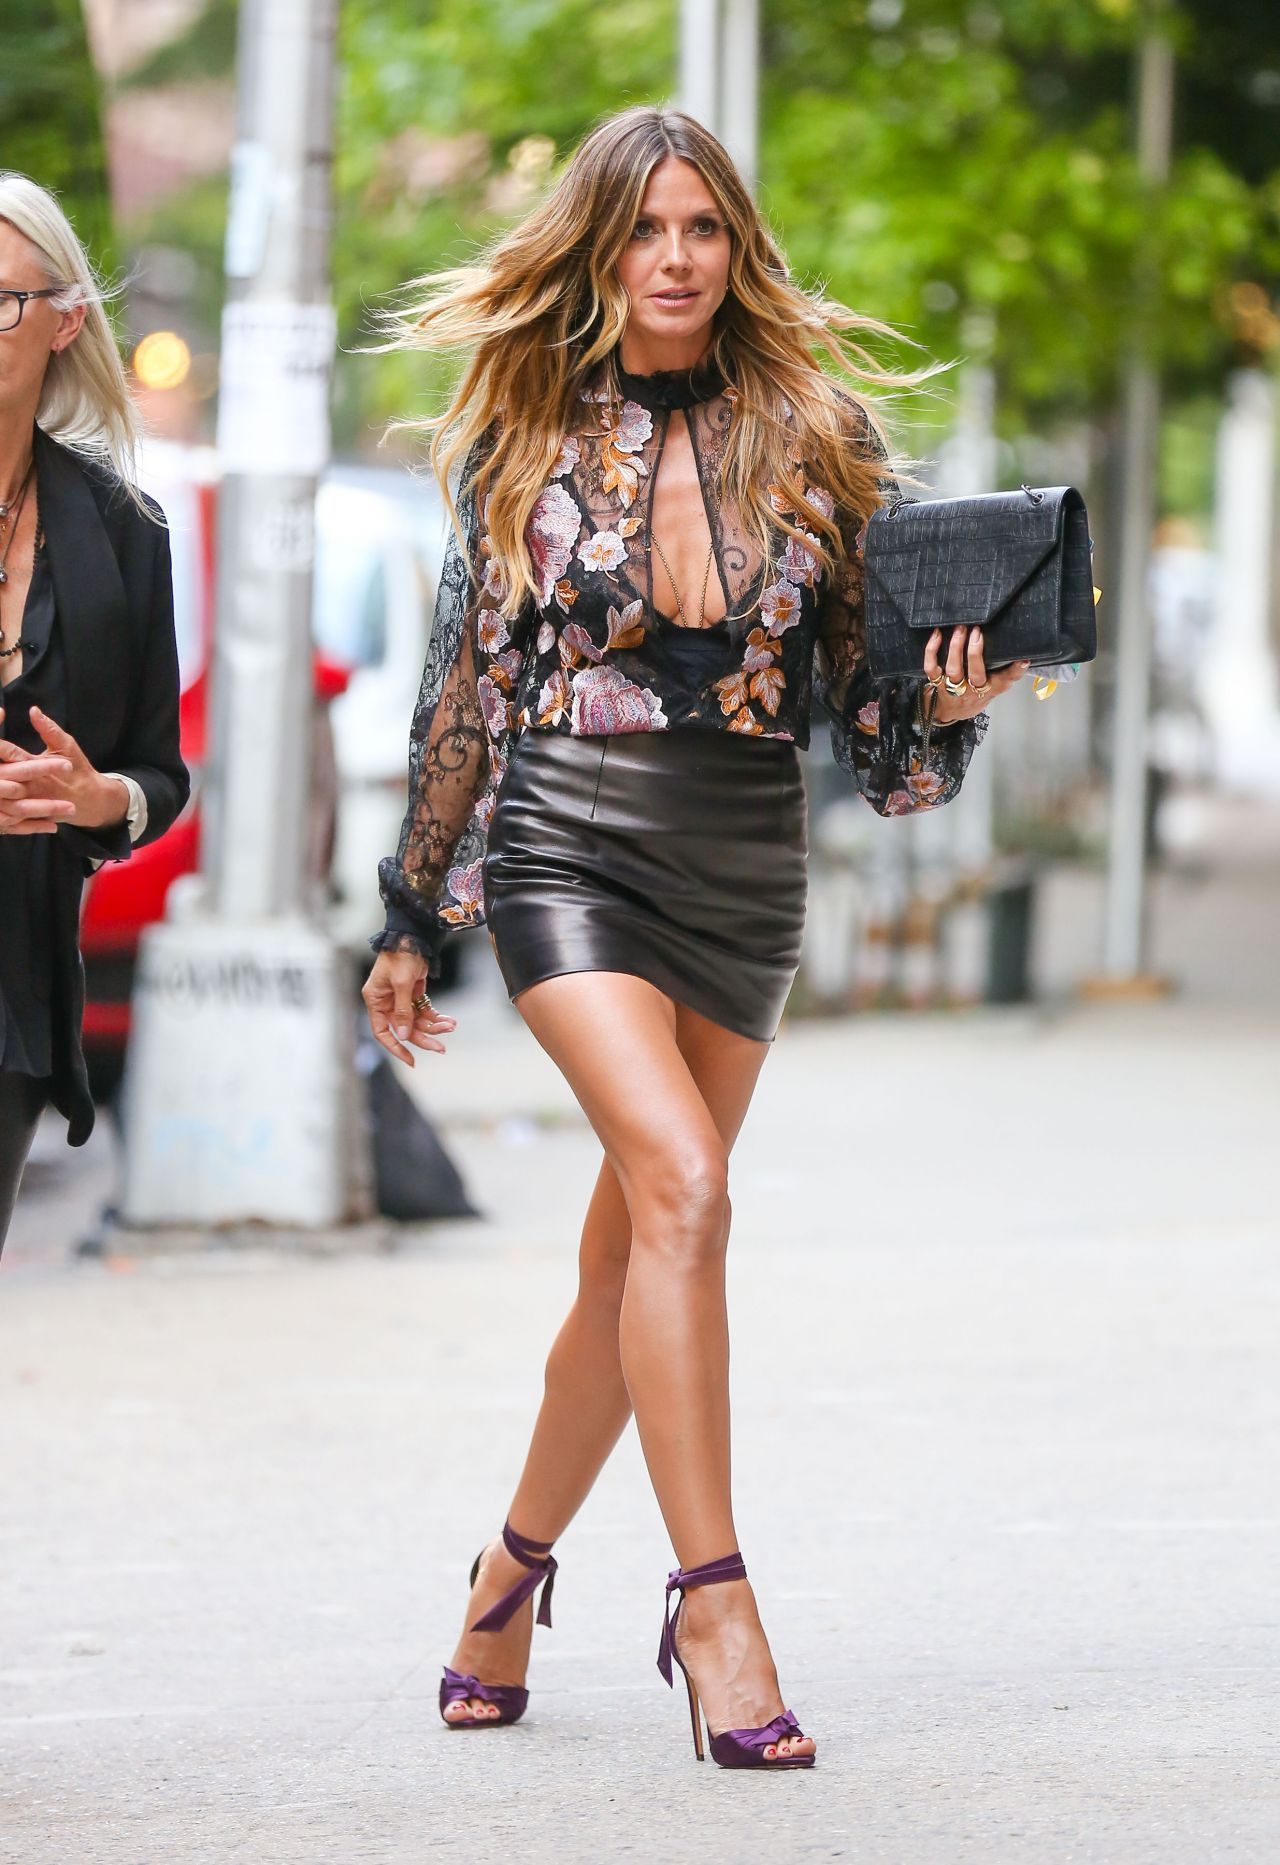 Heidi Klum In A Leather Mini Skirt And Sheer Blouse London